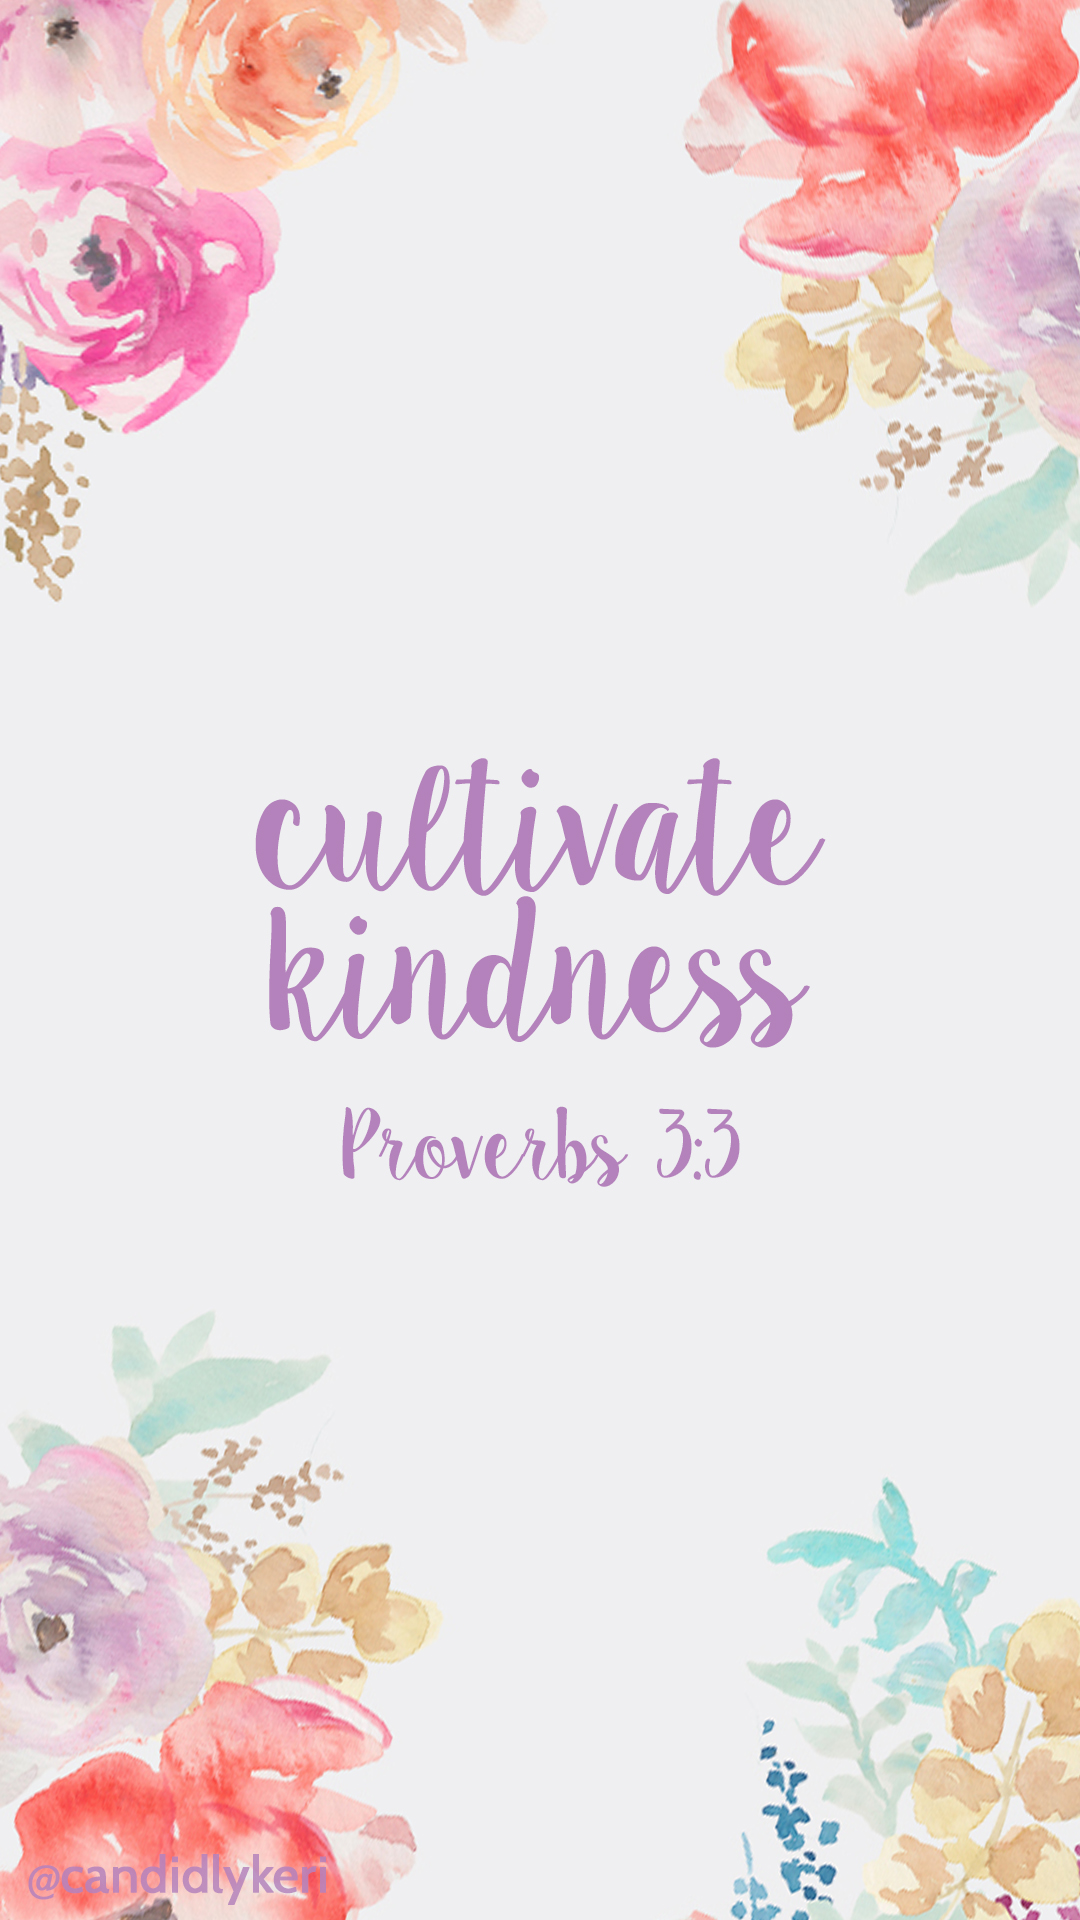 Cultivate-kindness-pray-proverbs-quote-bible-background-you-can-download-for-free-on-t-wallpaper-wpc5803808